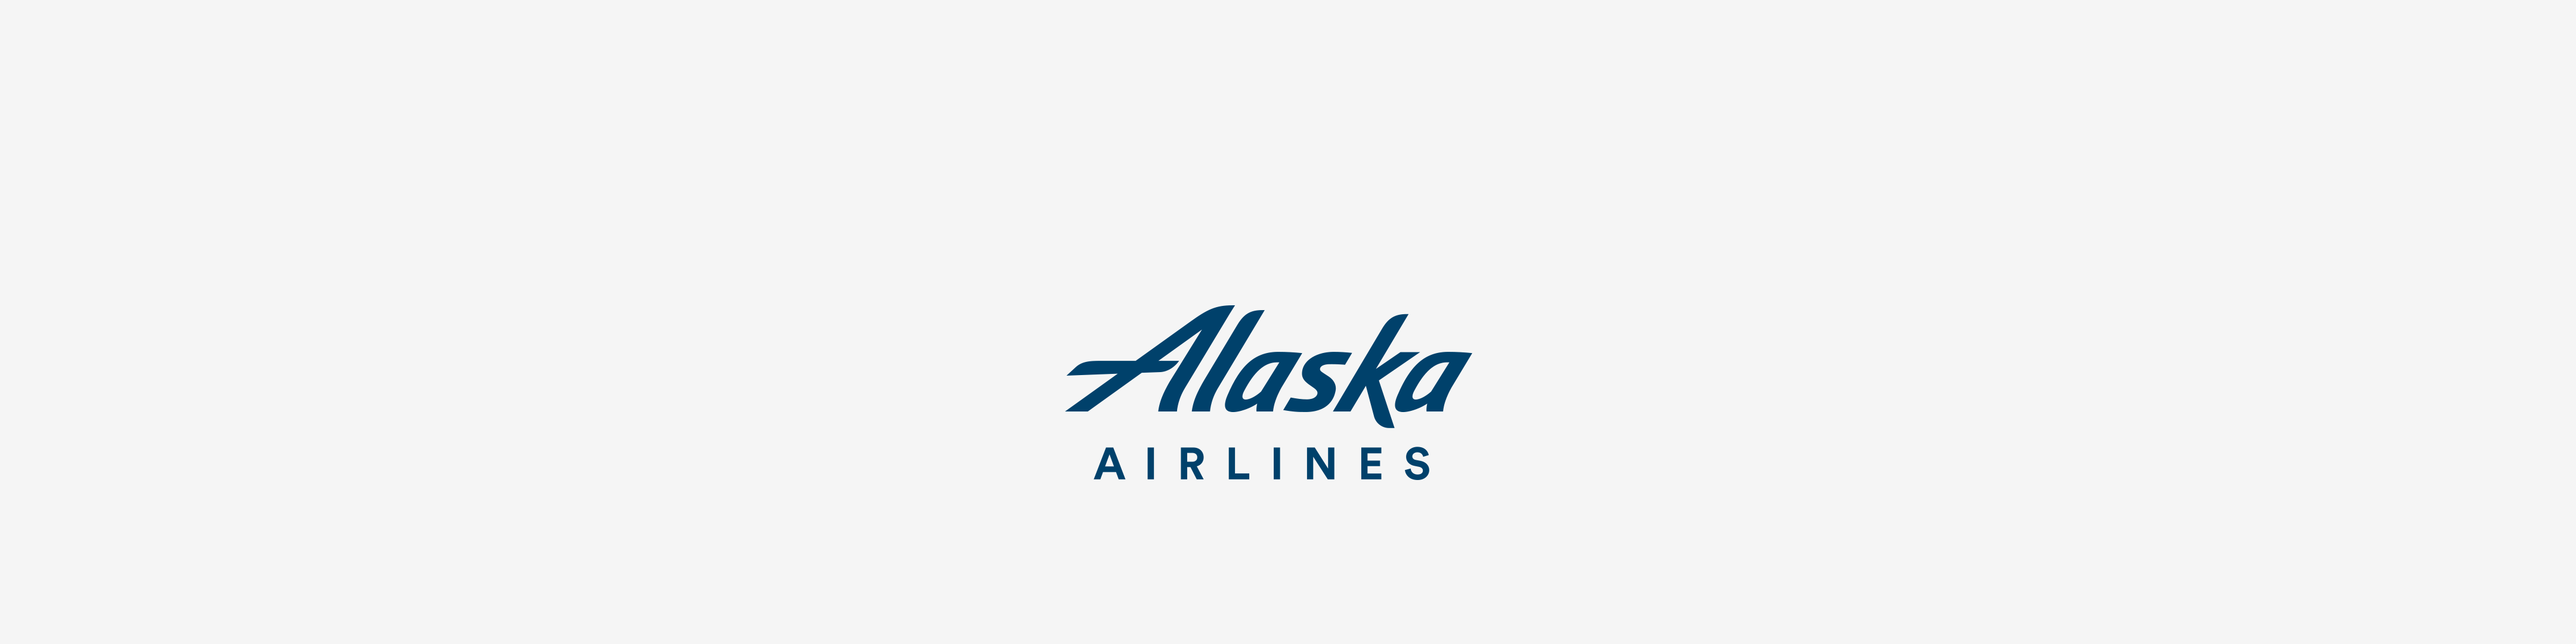 Alaska Airlines - Revenue & Download estimates - Apple App